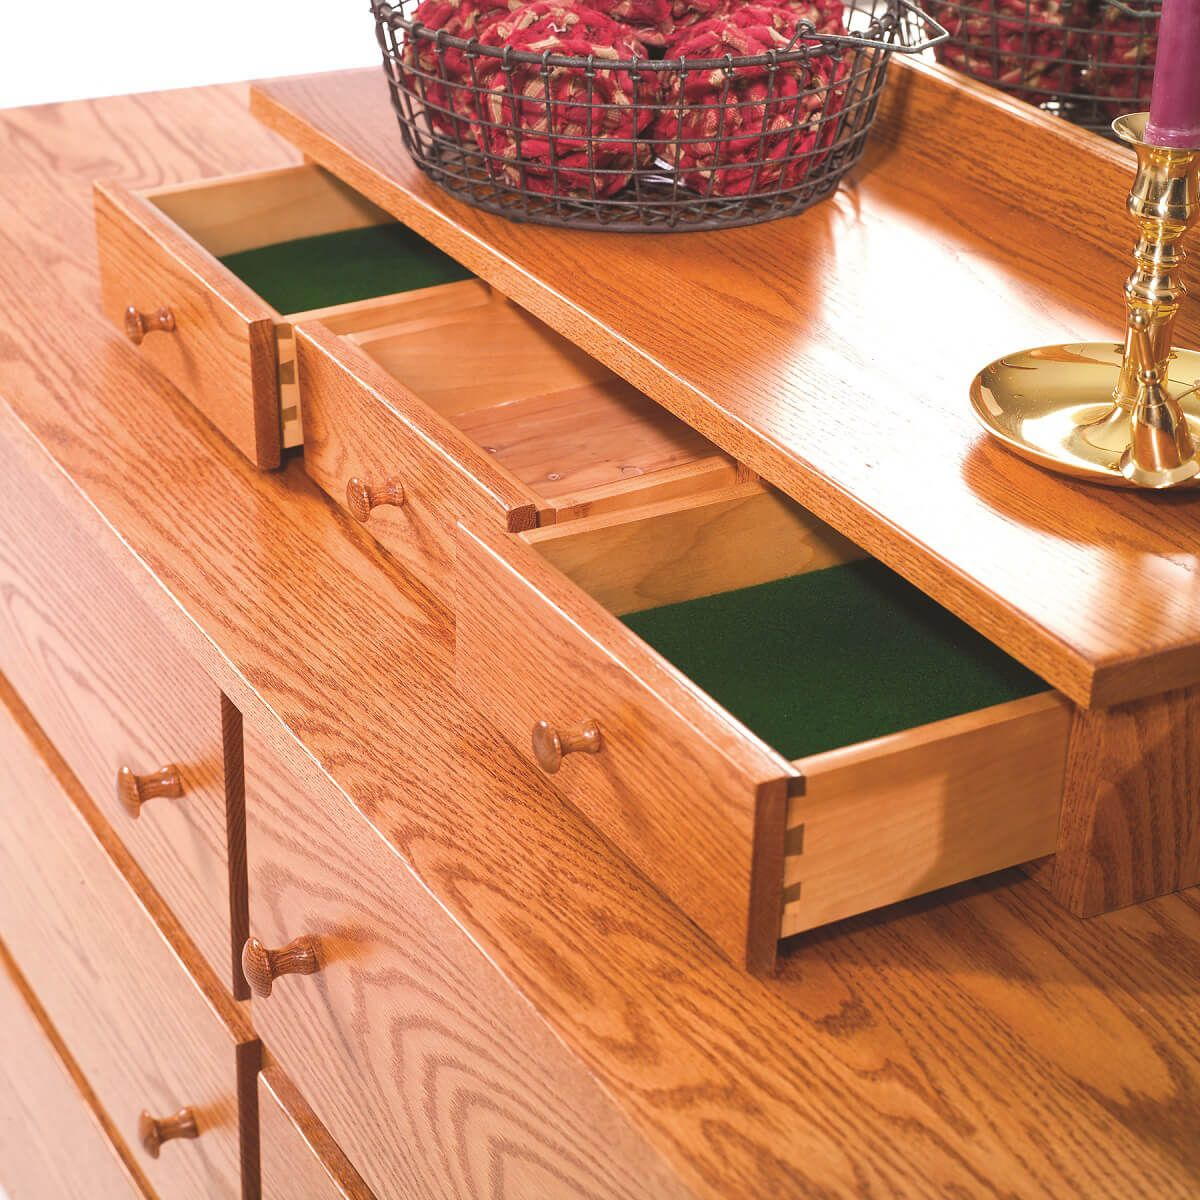 Upper Lined Drawers